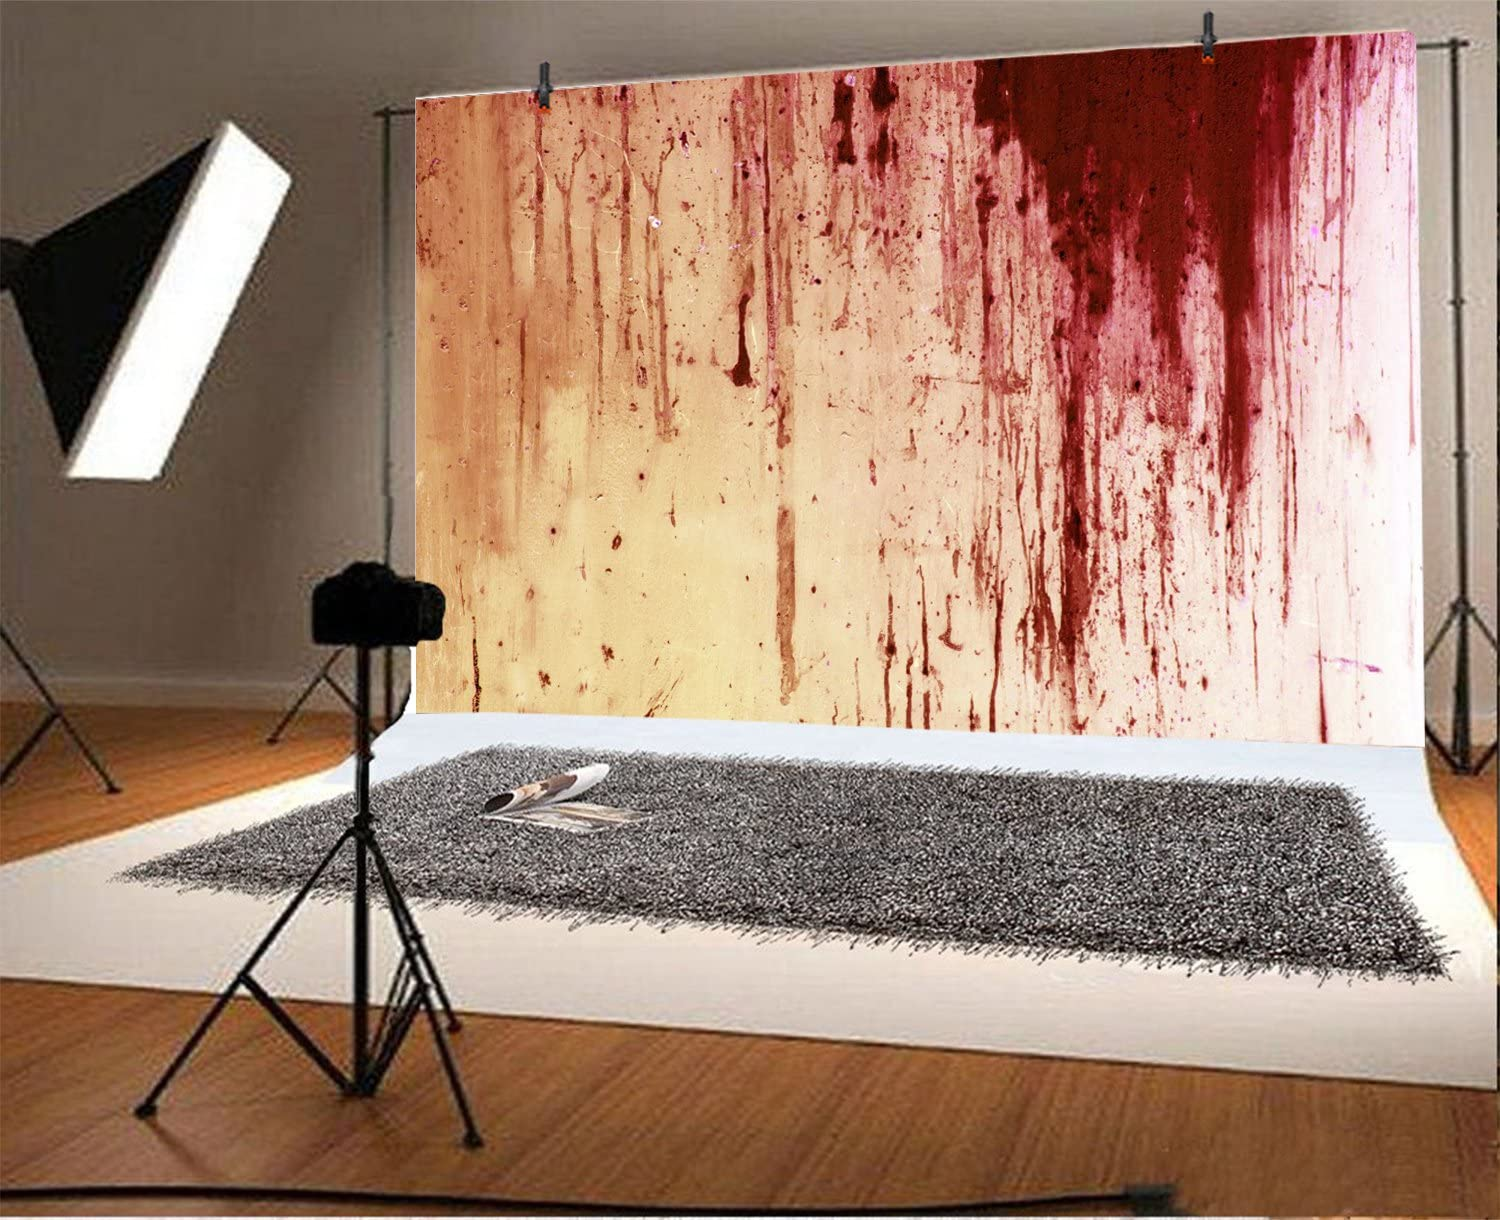 Leowefowa Halloween Bloody White Wall Backdrop 8x6ft Vinyl Photography Backgroud Huanted House Creepy Spooky Party Wizard Magic Zombie Revive Scary Night